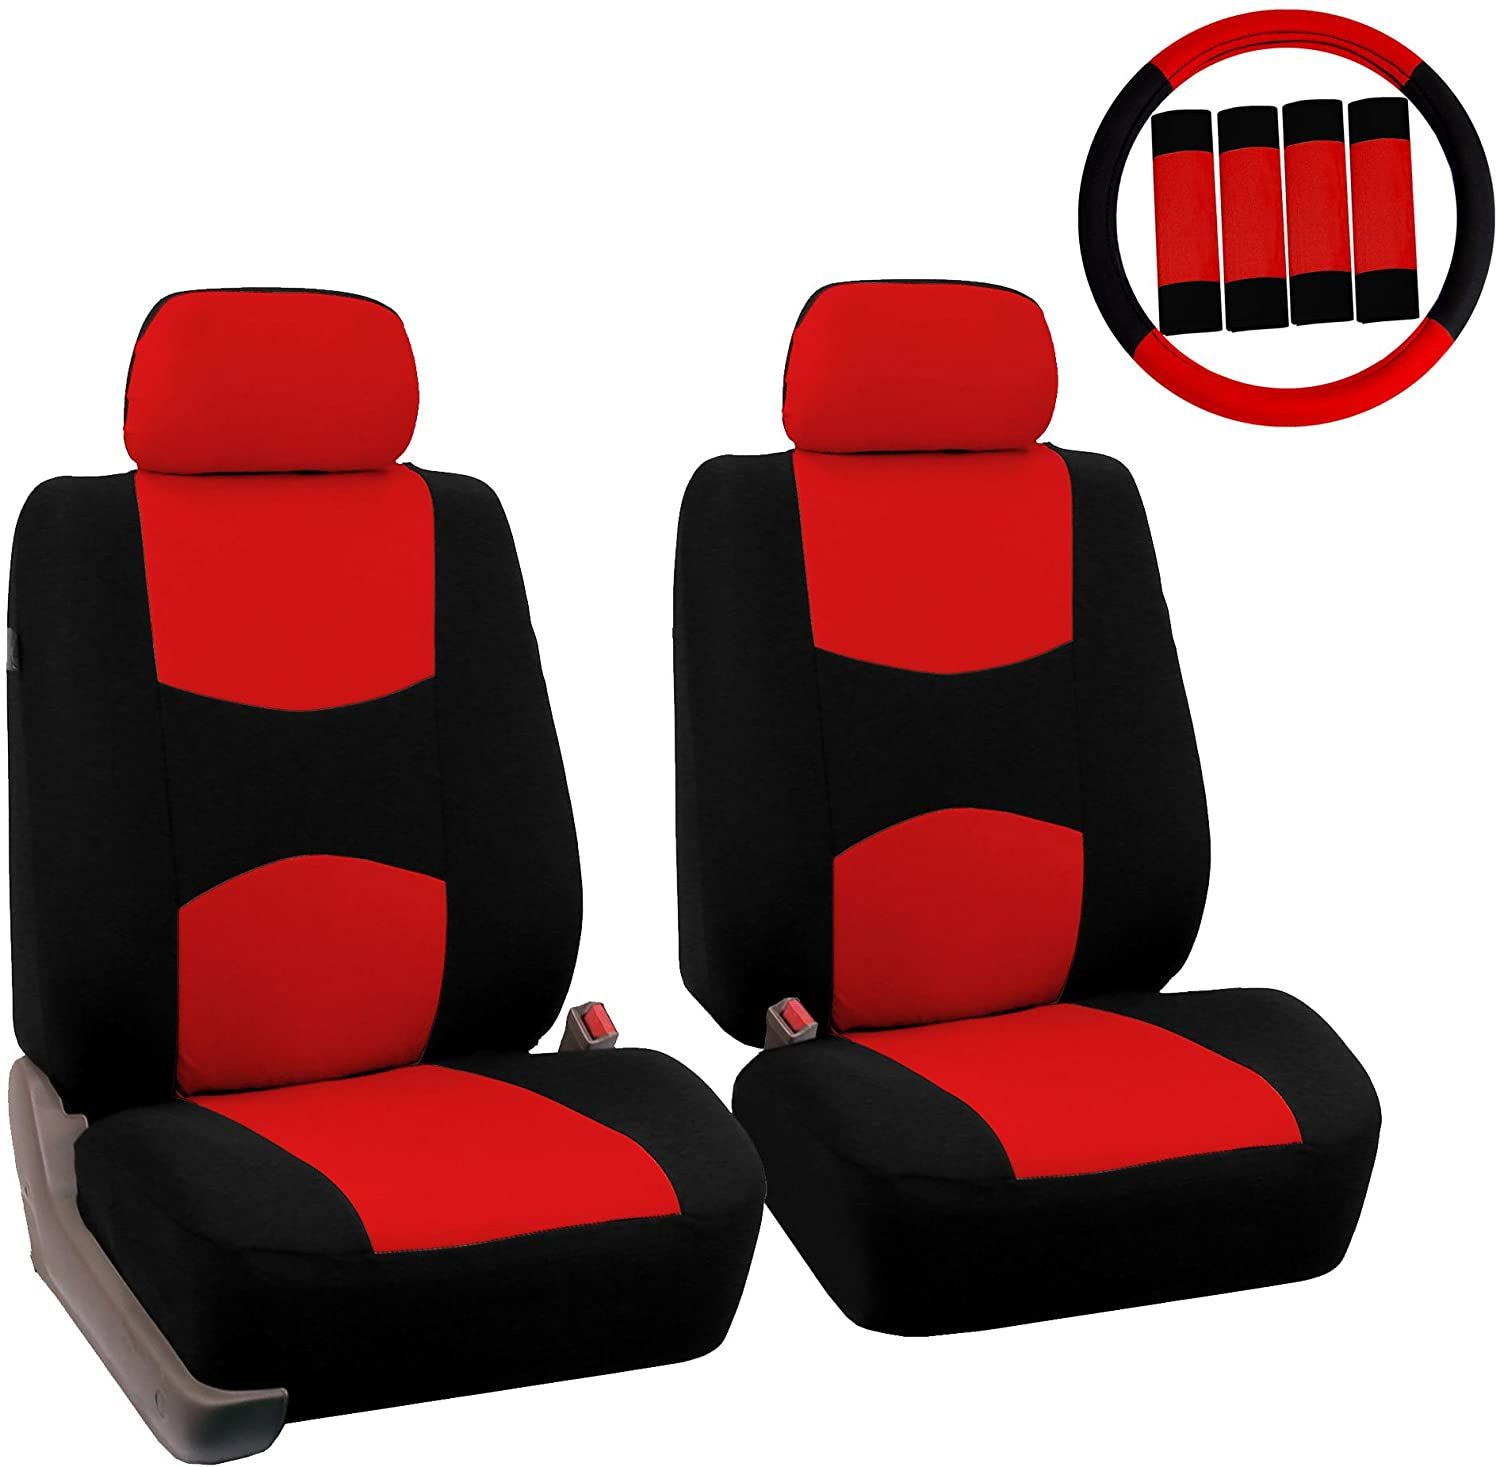 FH Group FB050102 Flat Cloth Seat Covers (Red) Front Set with Gift – Universal Fit for Cars Trucks & SUVs